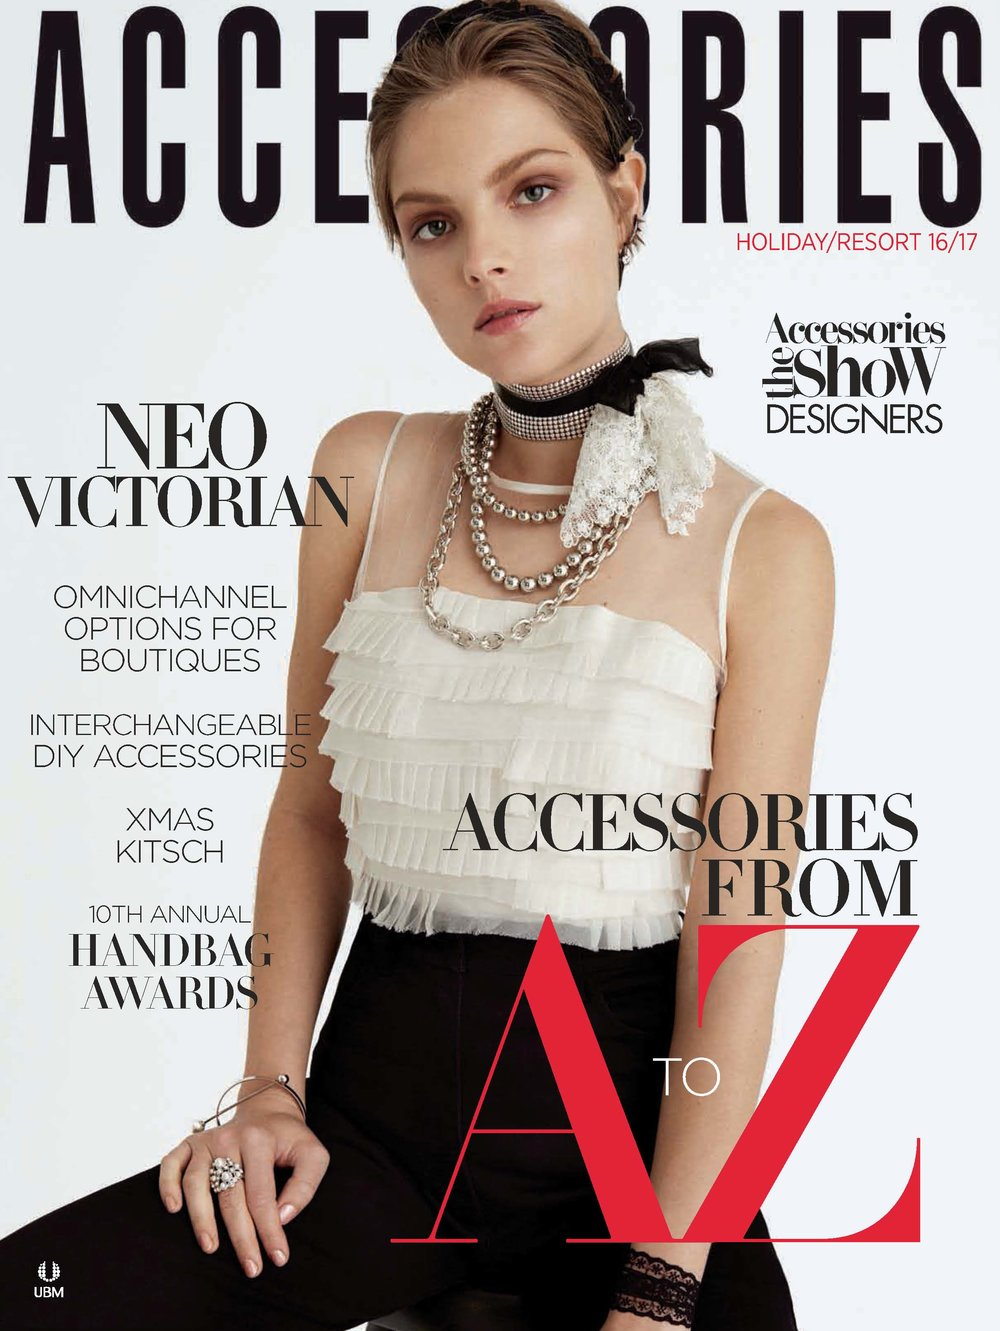 ACCESSORIES MAGAZINE- AOÛT 2016